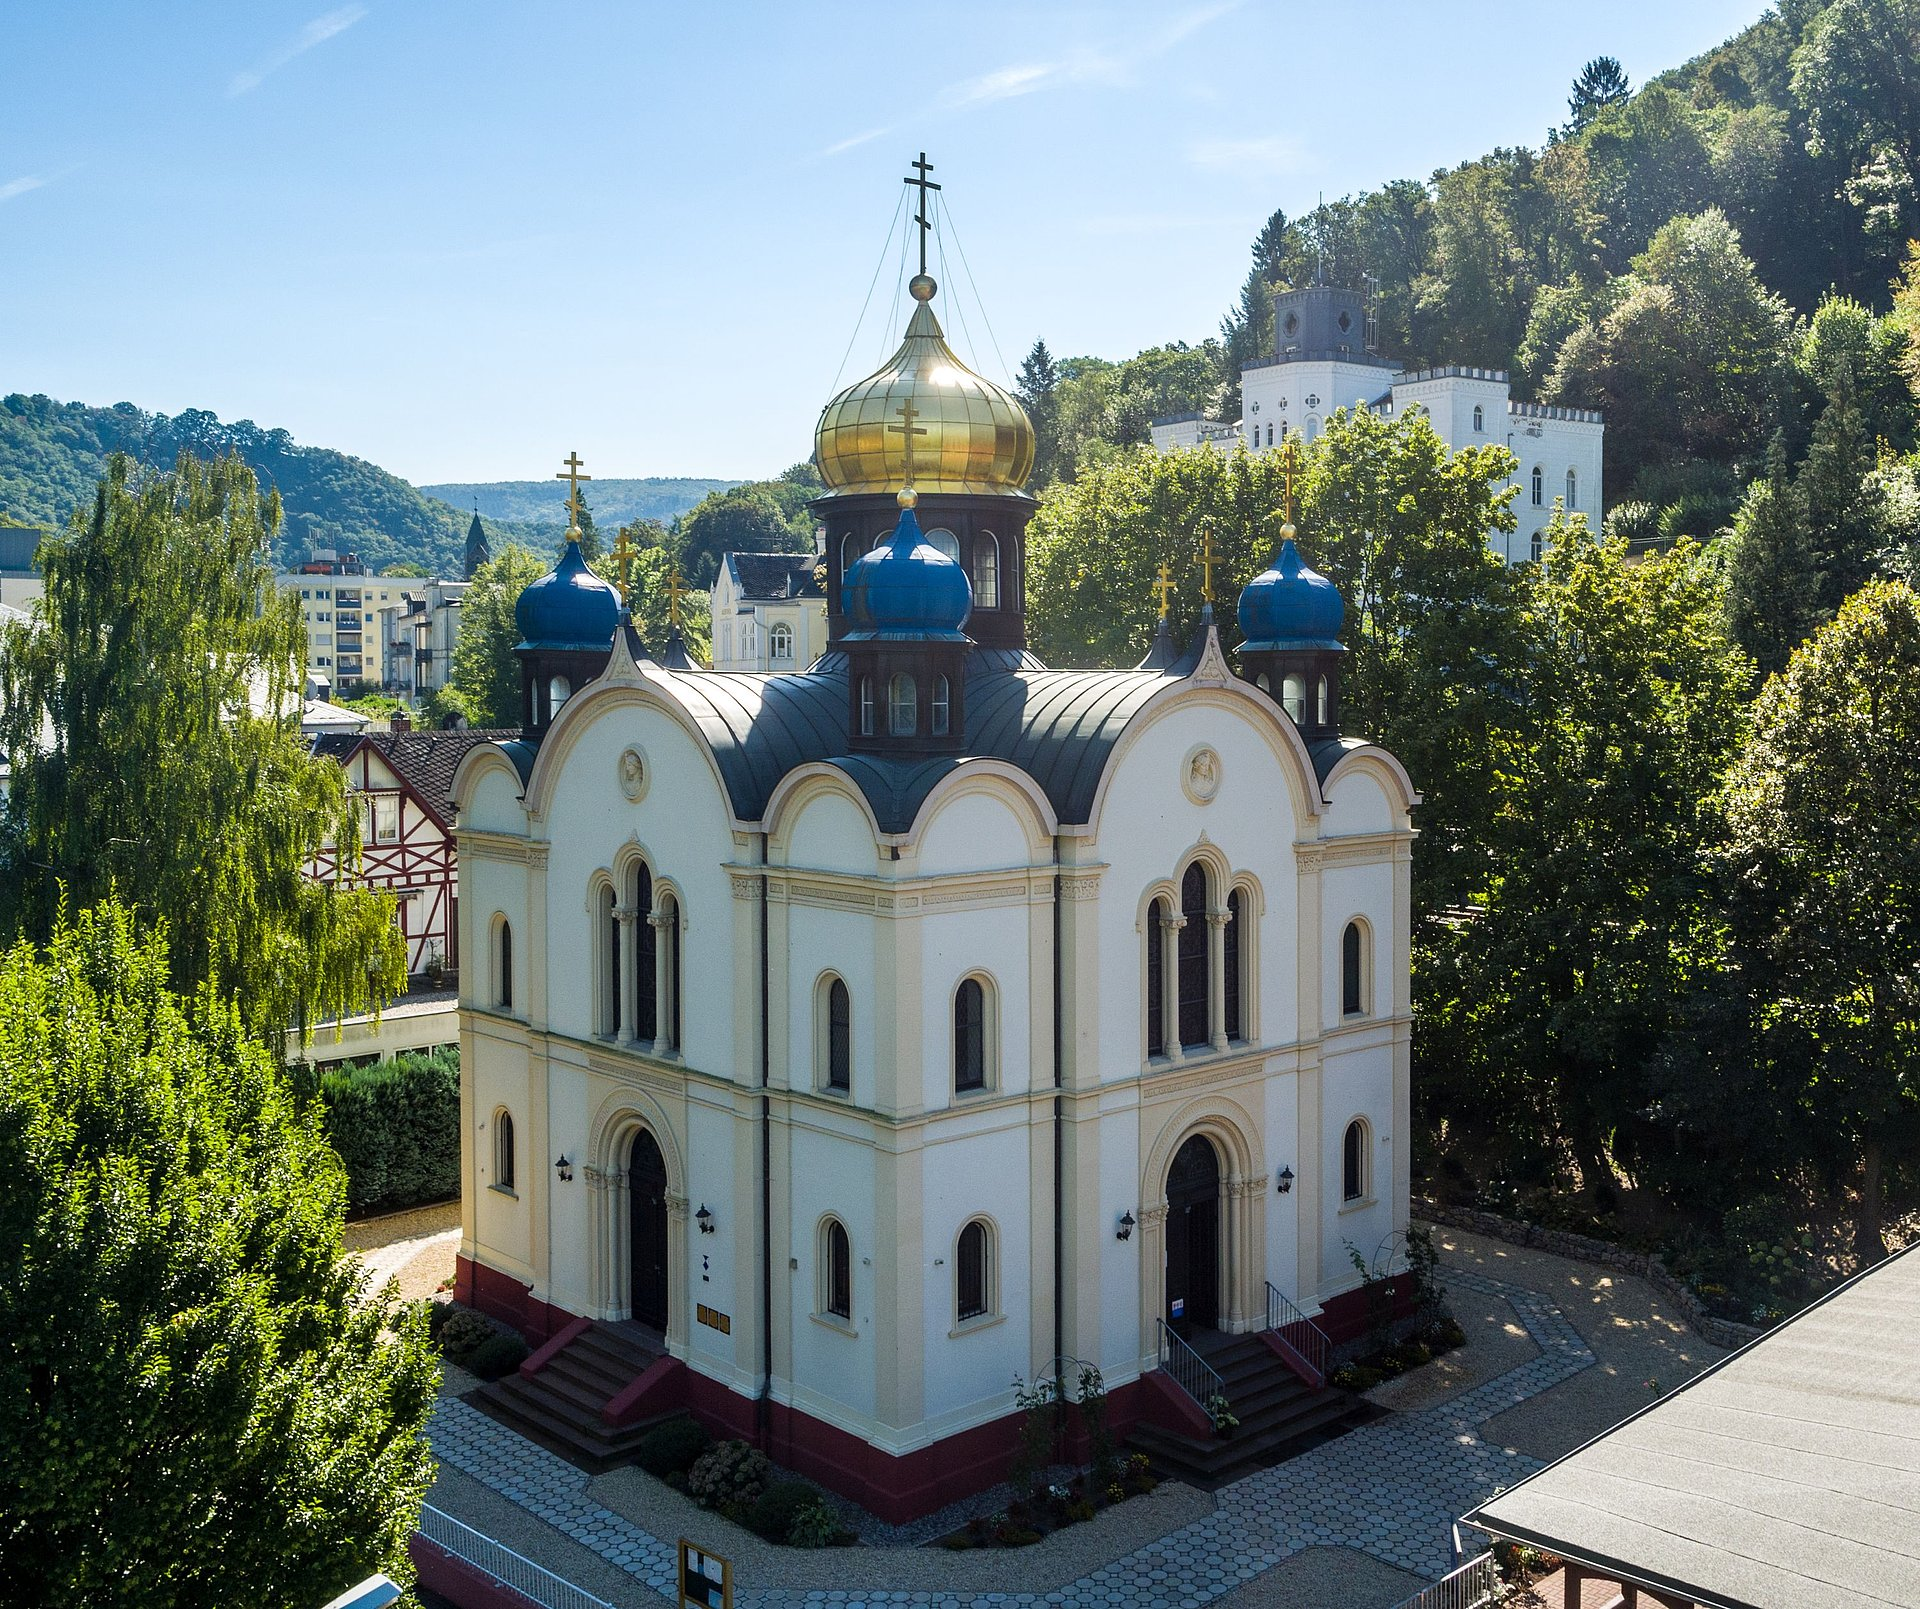 Russisch-Orthodoxe Kirche Bad Ems, Lahntal